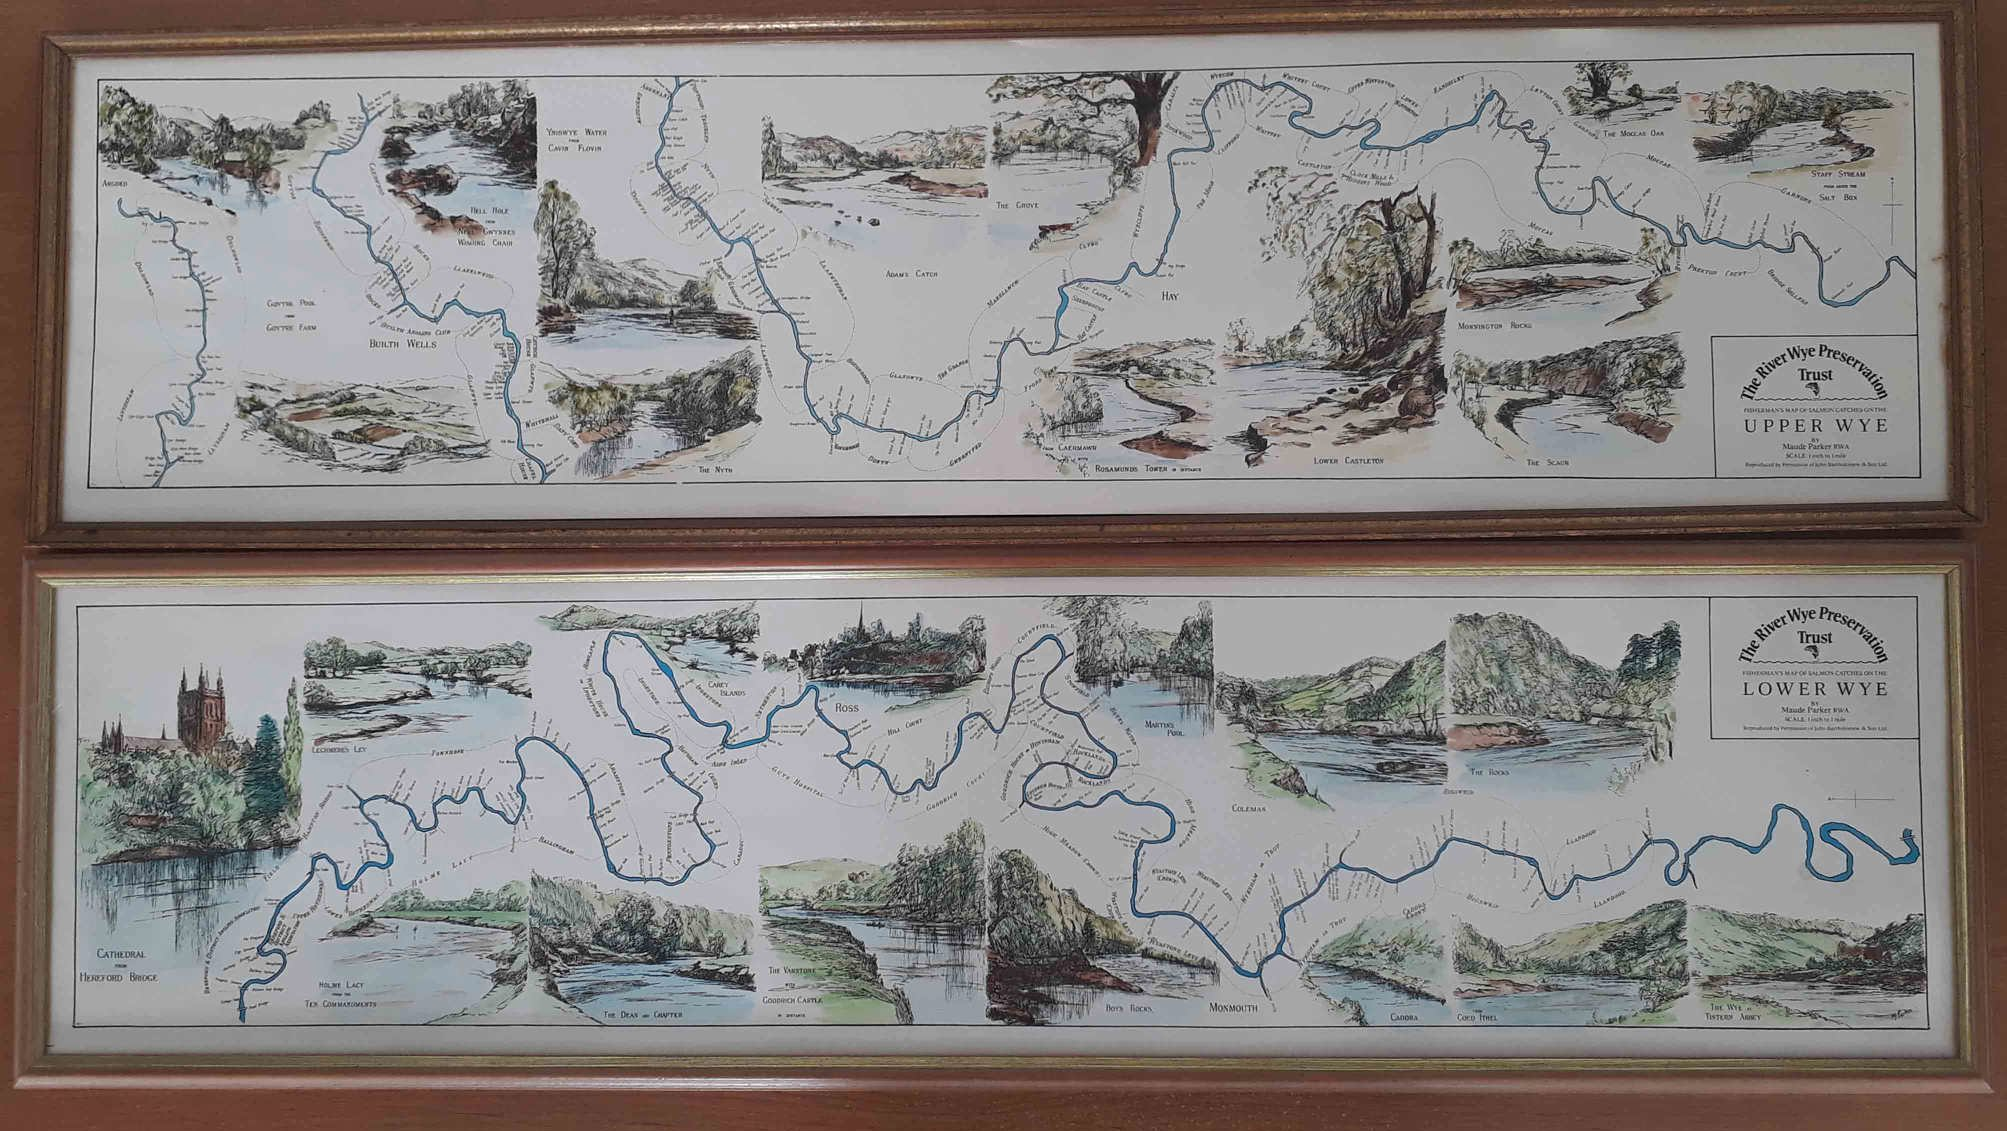 Maps of the Wye, showing historic beats and pool names are now available via the Fishing Passport website